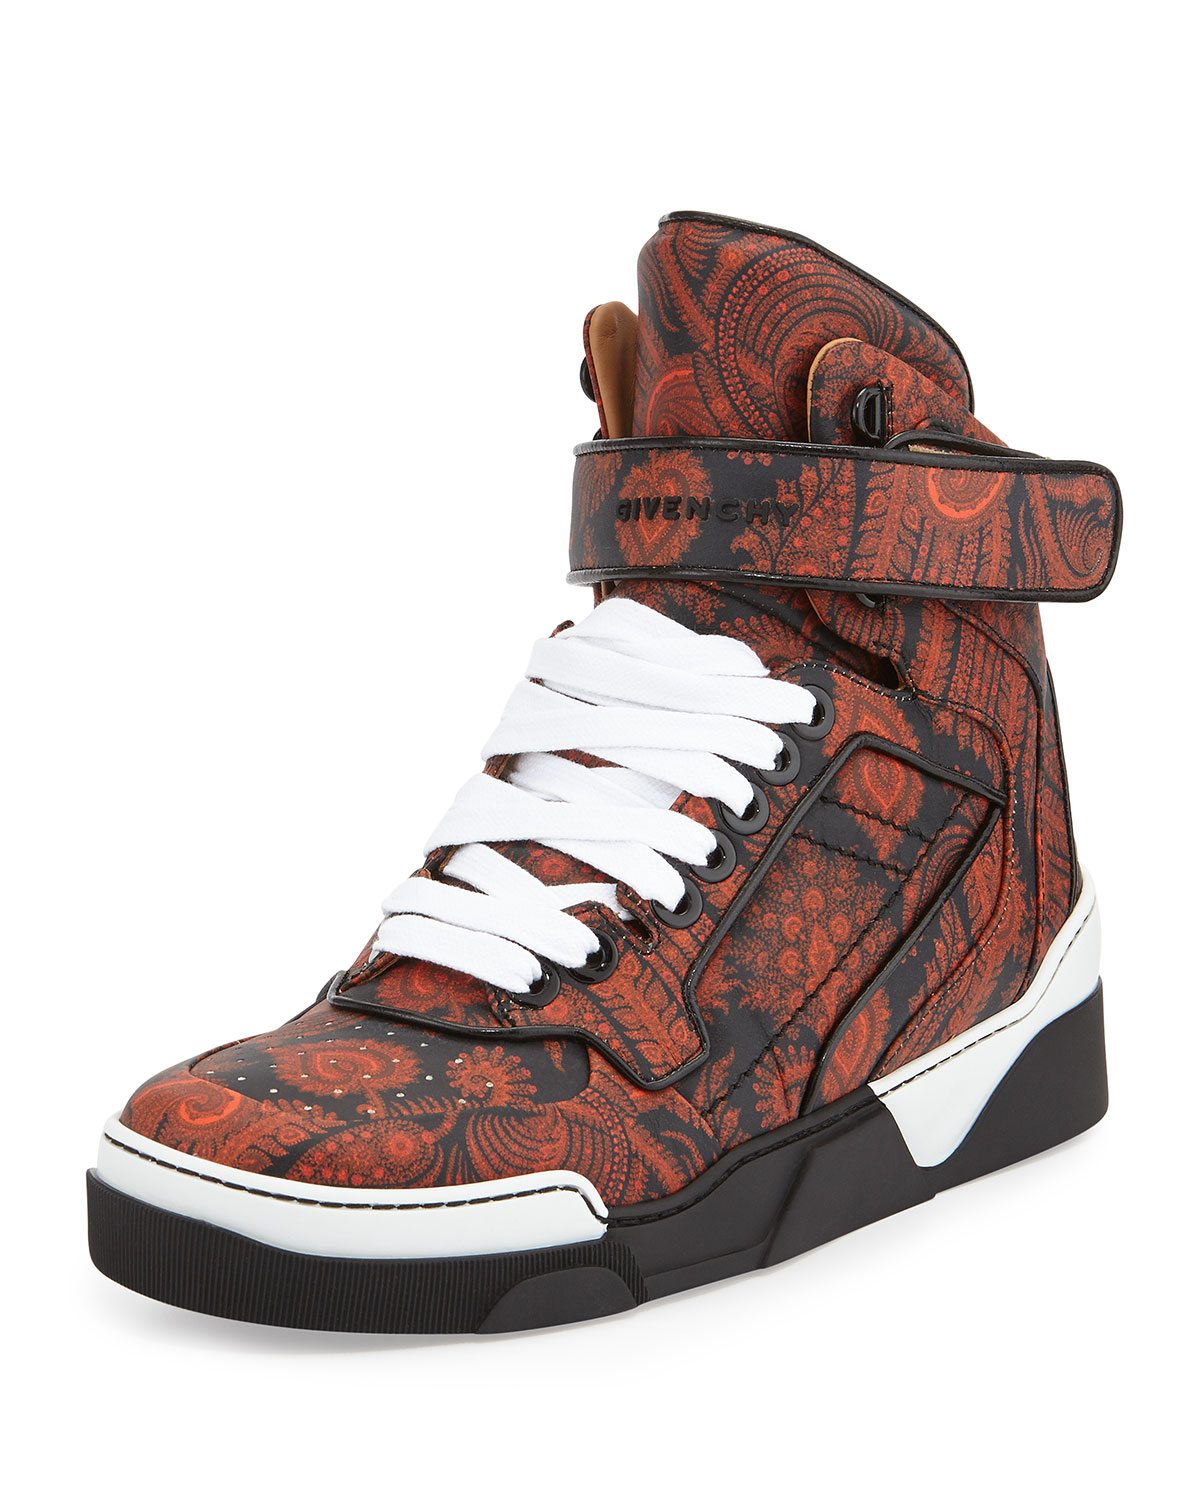 lyst givenchy tyson paisley print high top sneakers in black for men. Black Bedroom Furniture Sets. Home Design Ideas